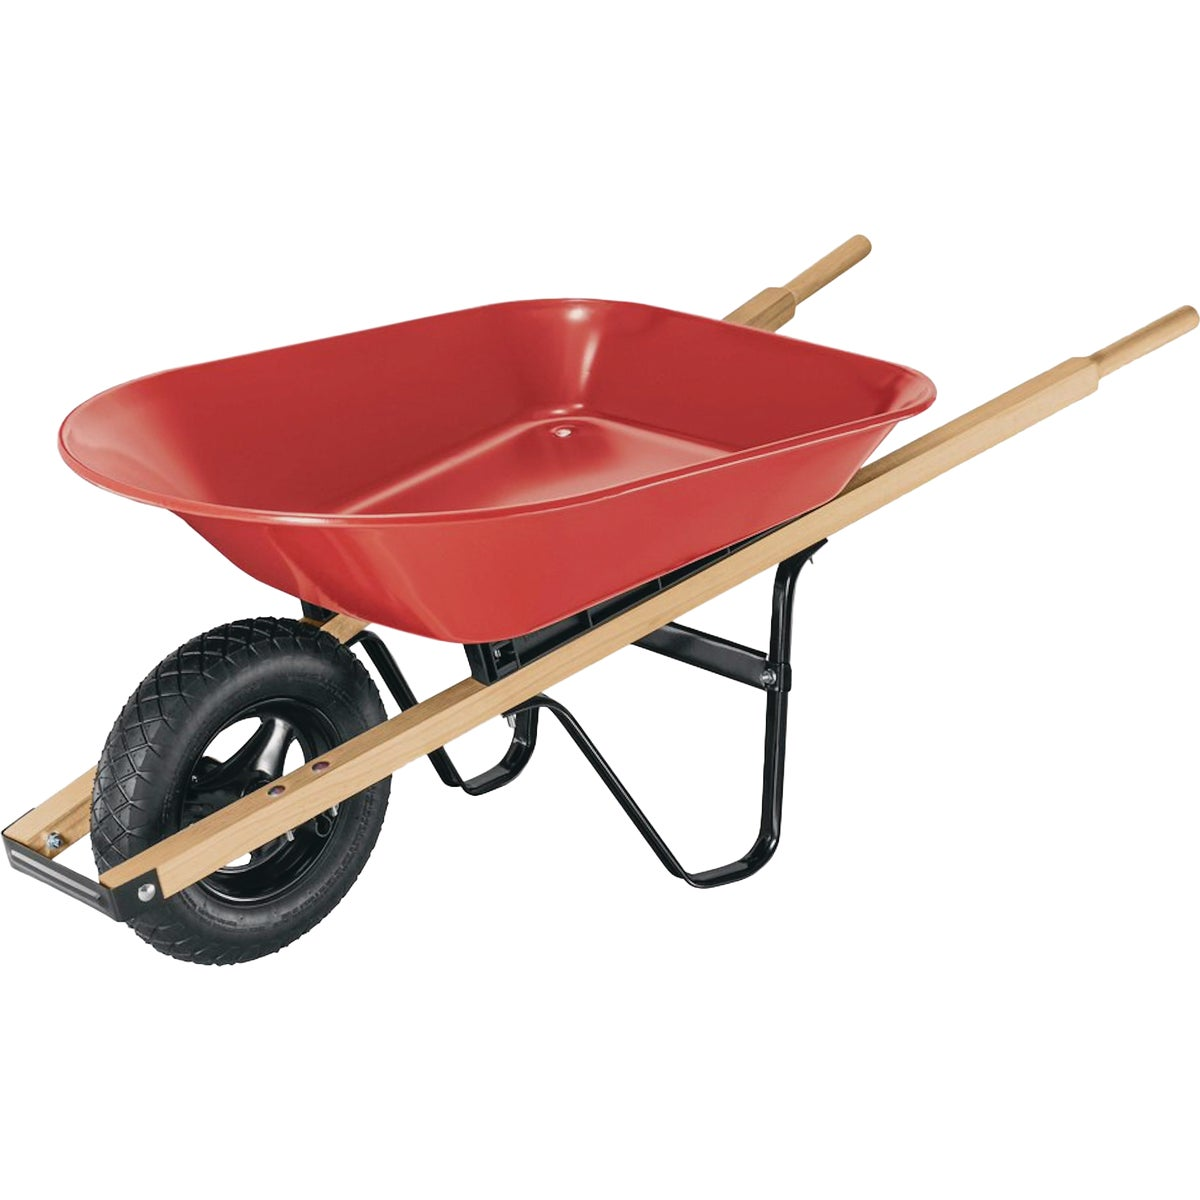 4CU FT STEEL WHEELBARROW - B4 by Truper Herramientas